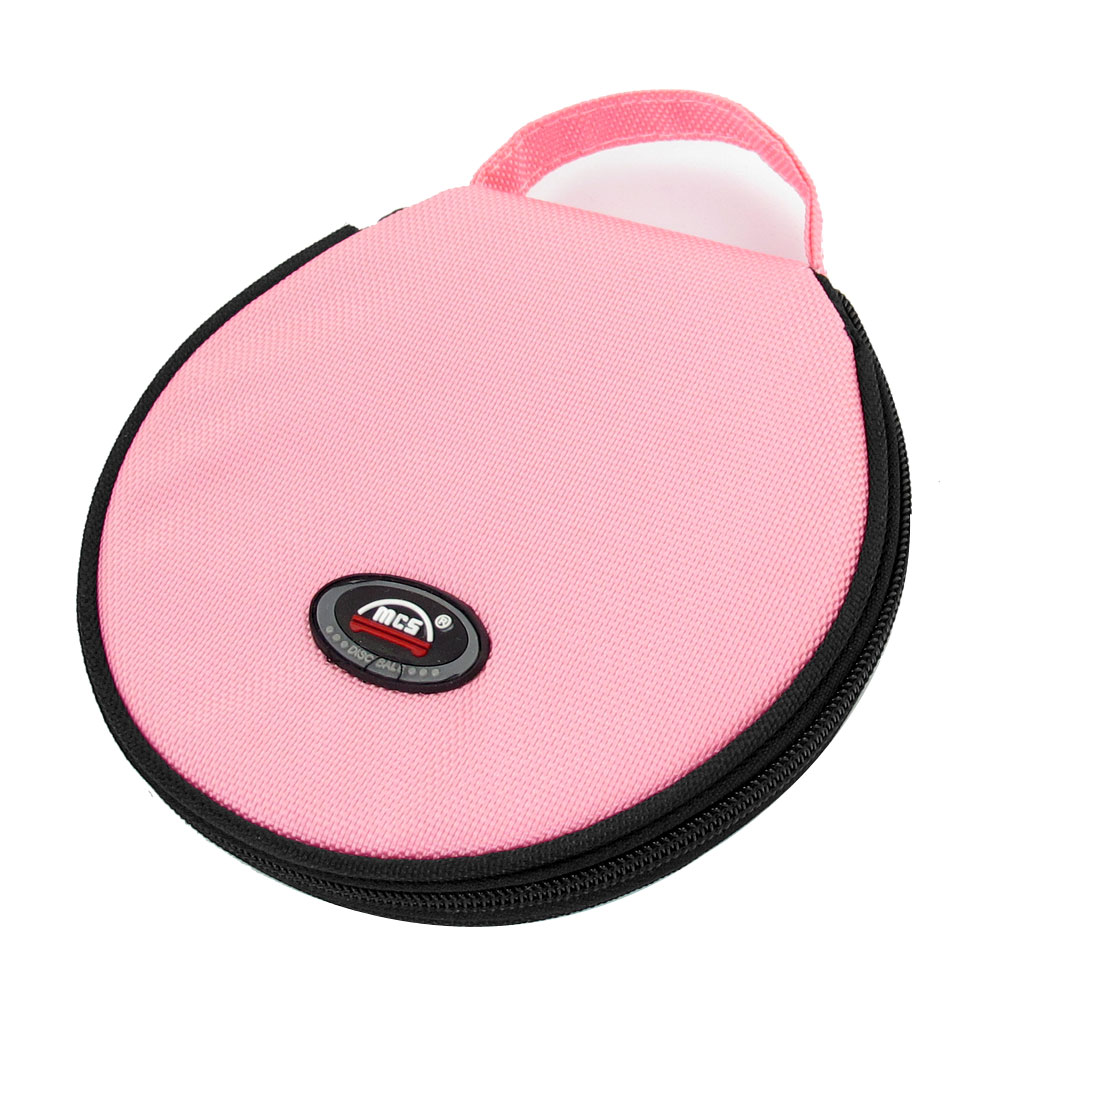 Family Car Round Shaped 20 Pieces CD VCD Disc Zip up Holder Bag Black Pink